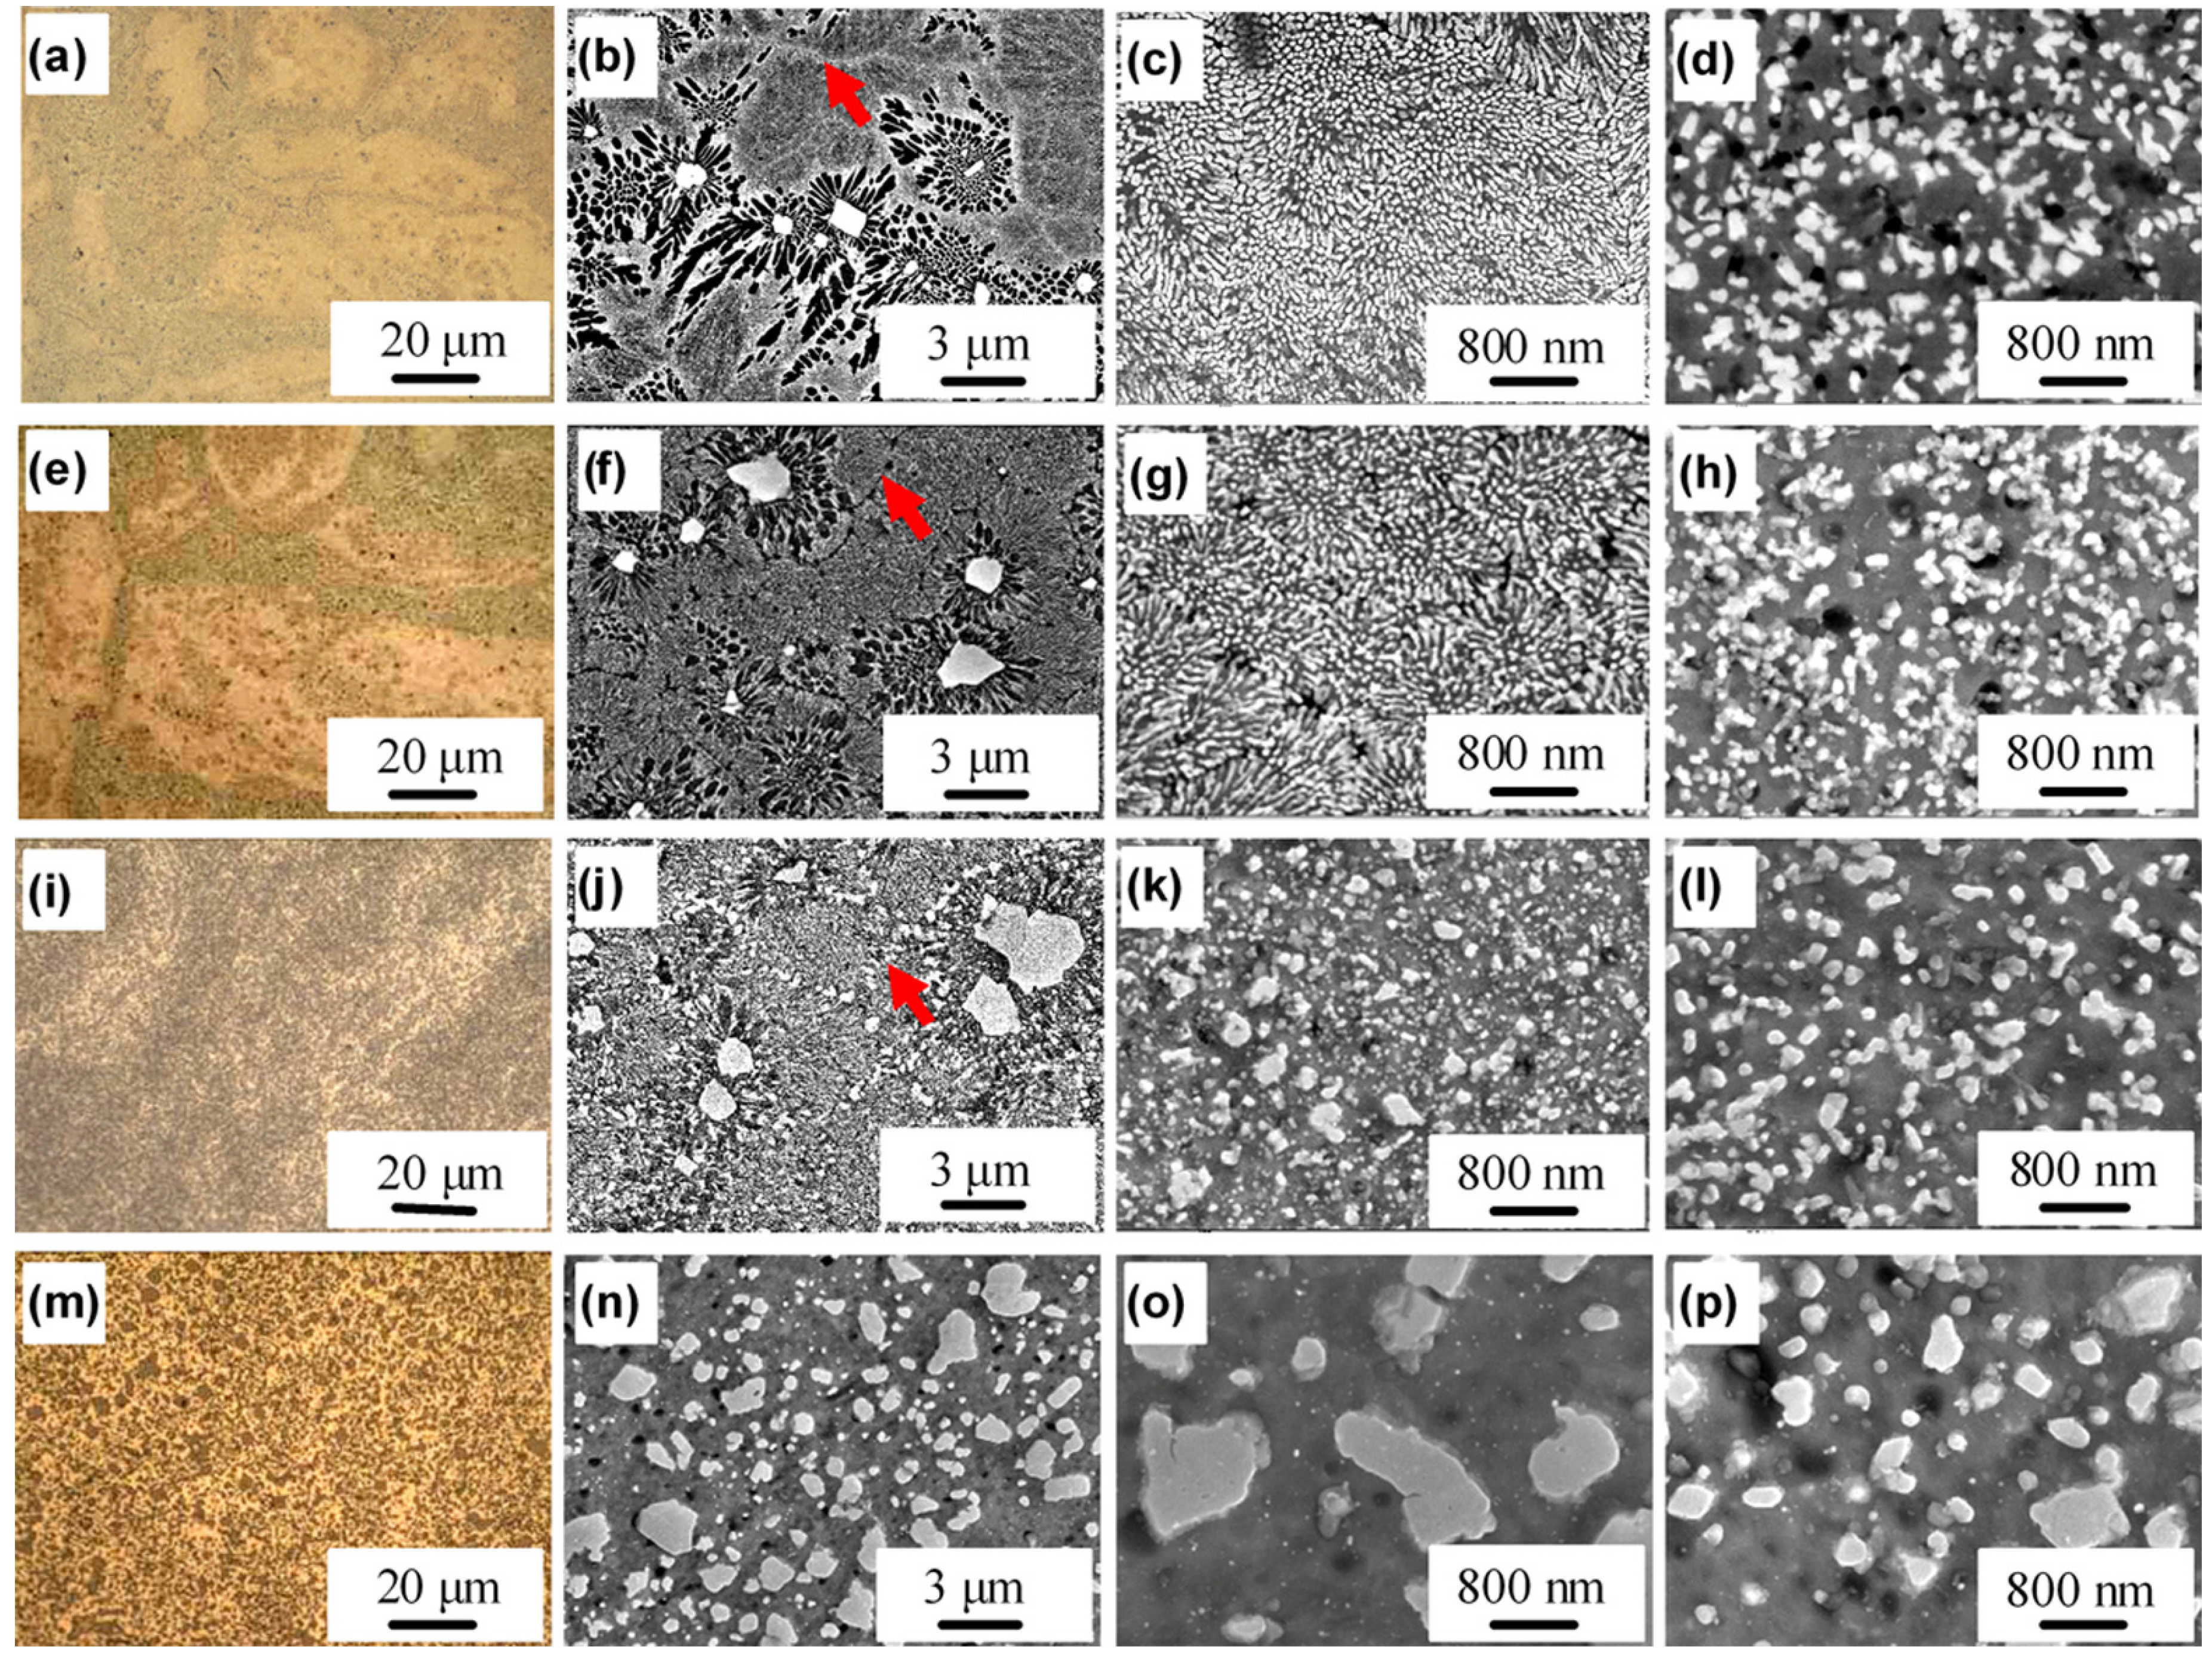 Microstructure of materials